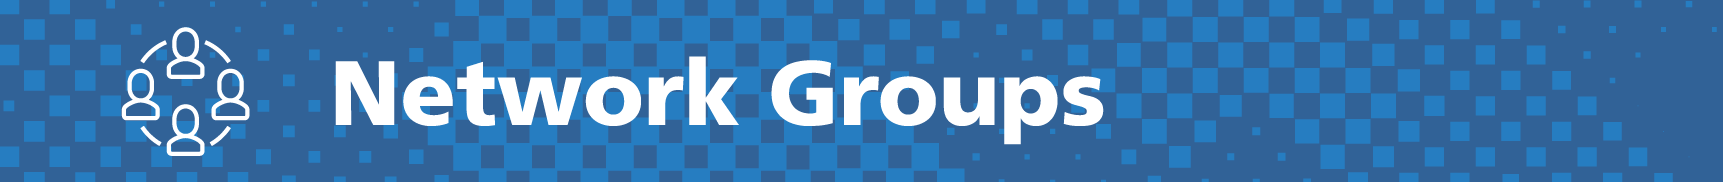 Network Groups banner